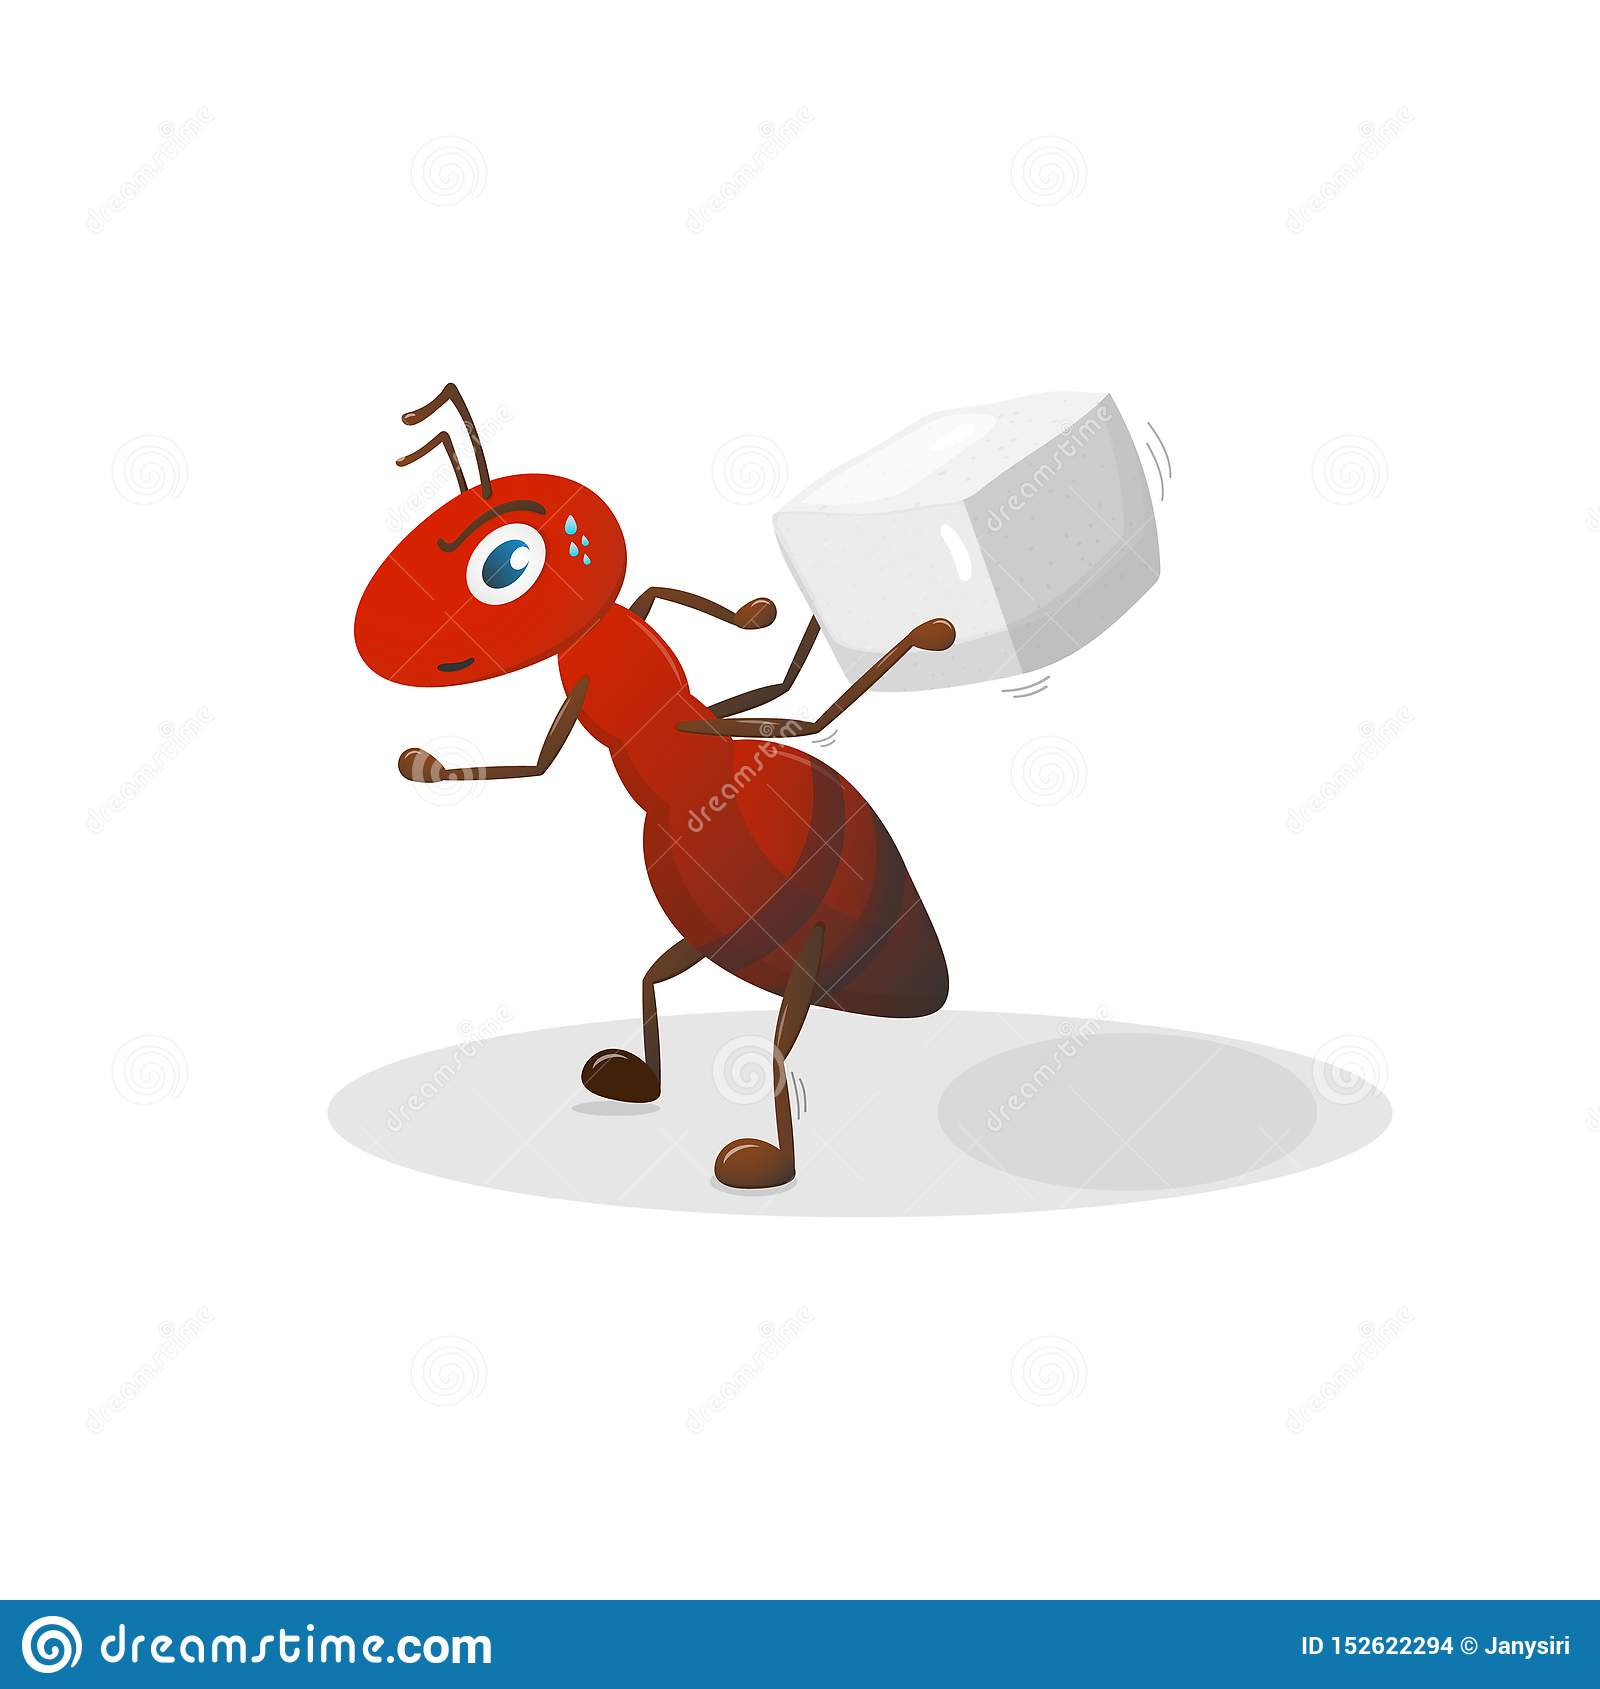 Red ant cartoon character.Objects on white background.